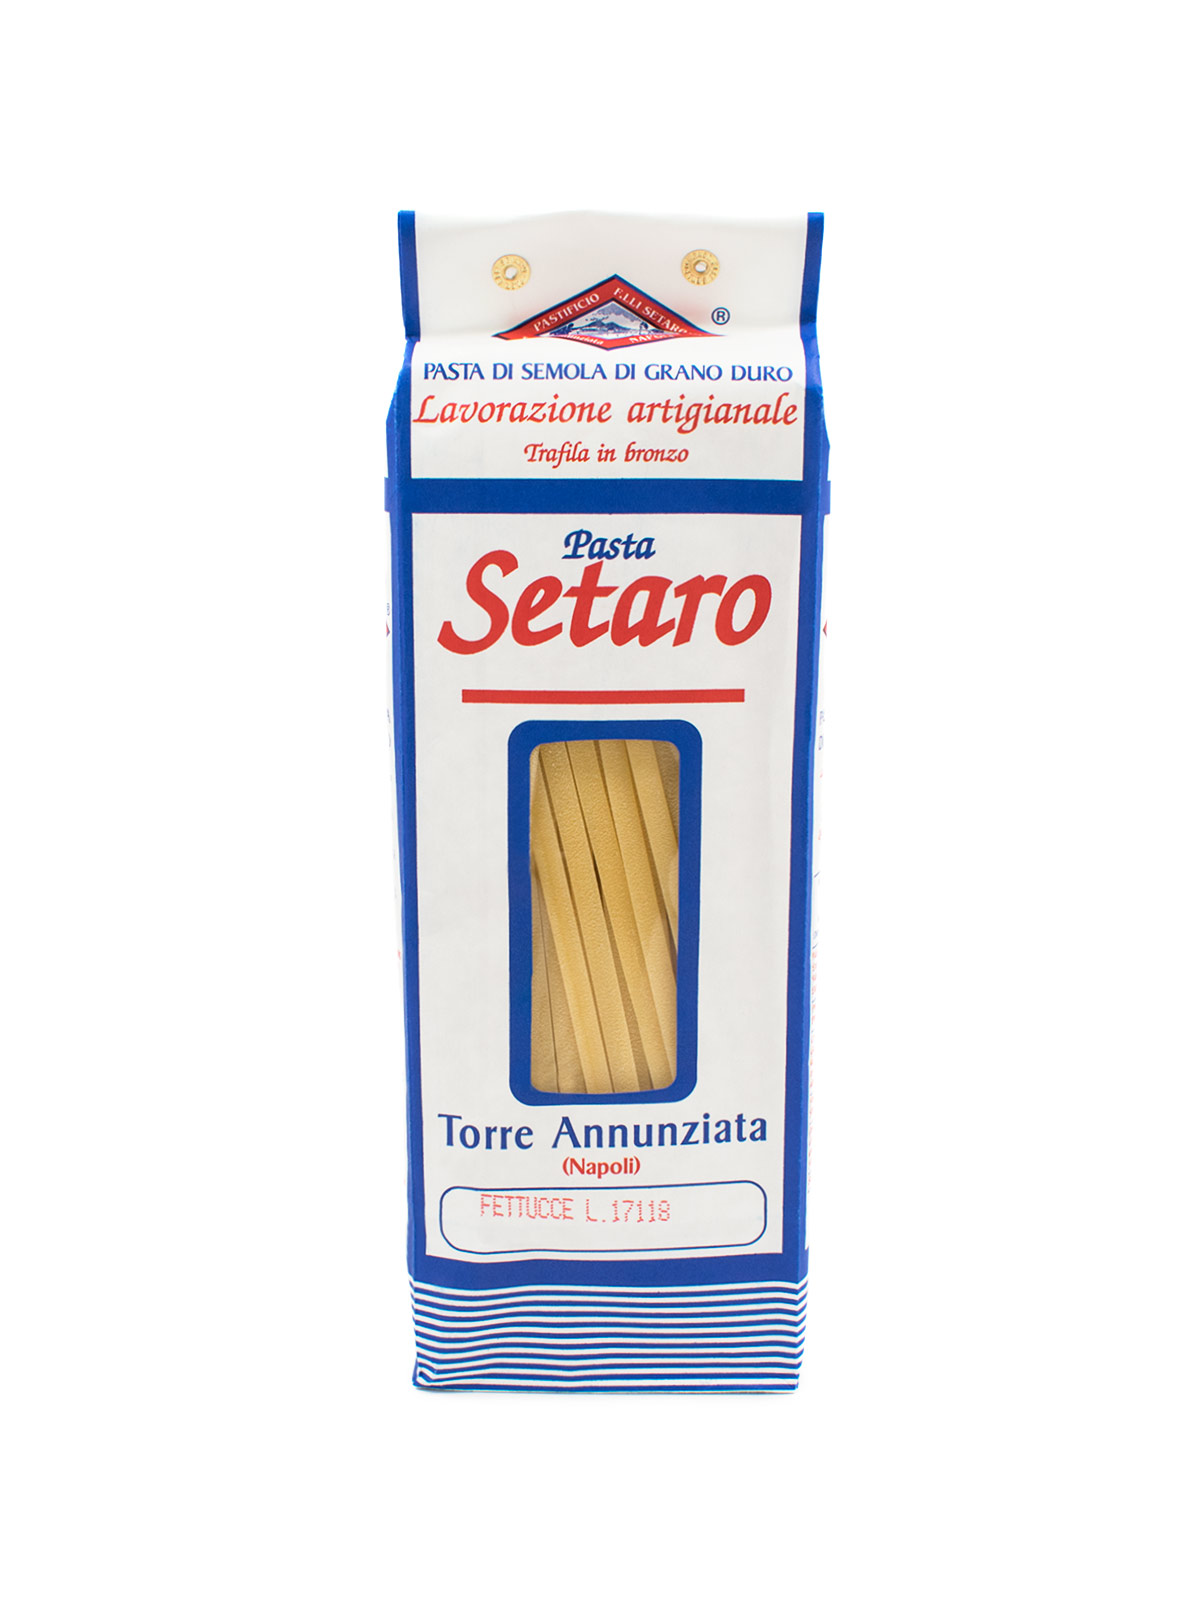 Fettucce - Pastas, Rice, and Grains - Buon'Italia